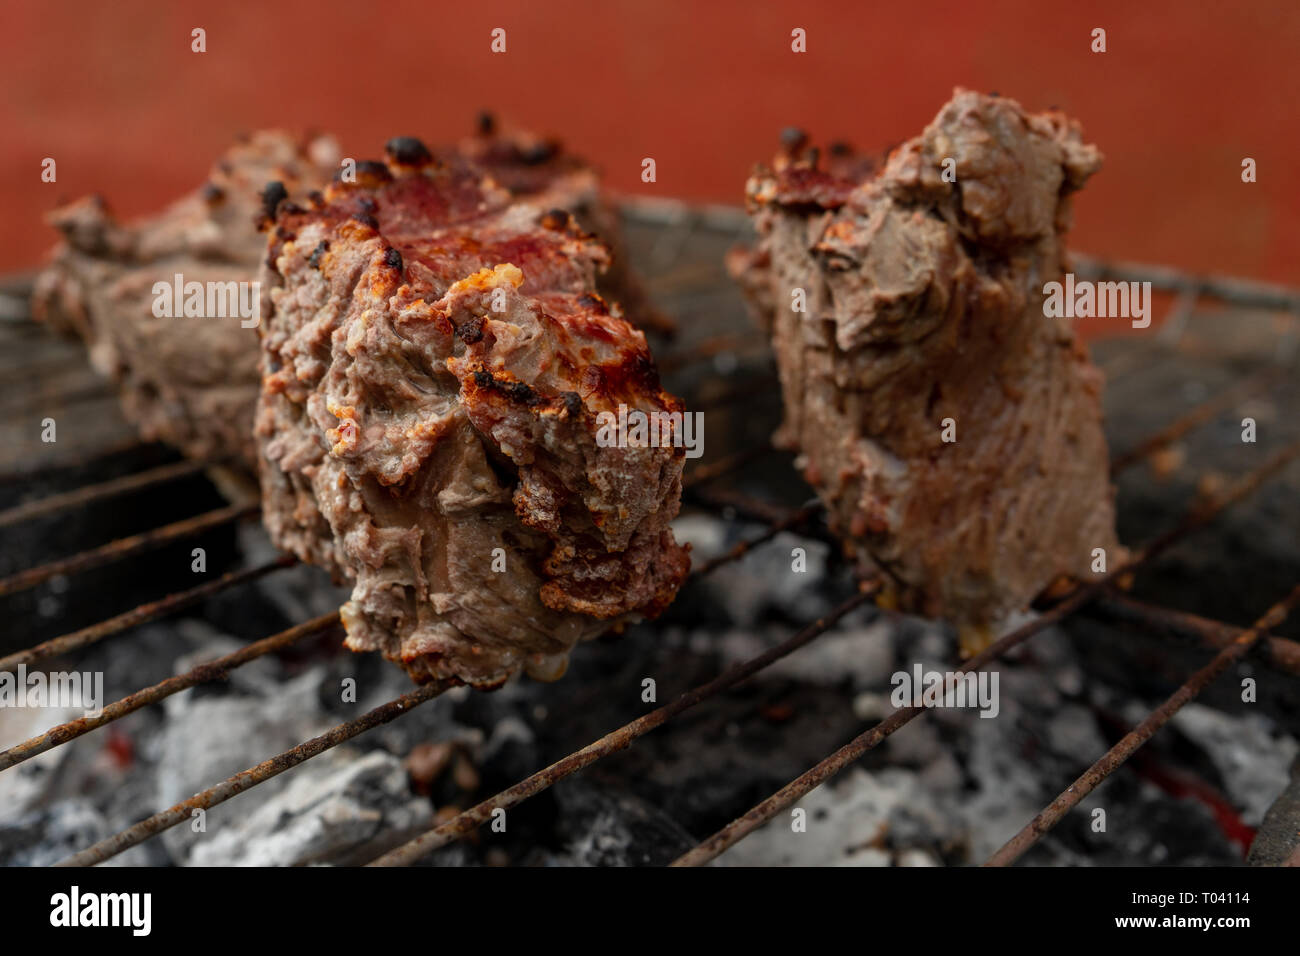 Cooking on artisanal grill a roast beaf. Meat for luhnc. Stock Photo